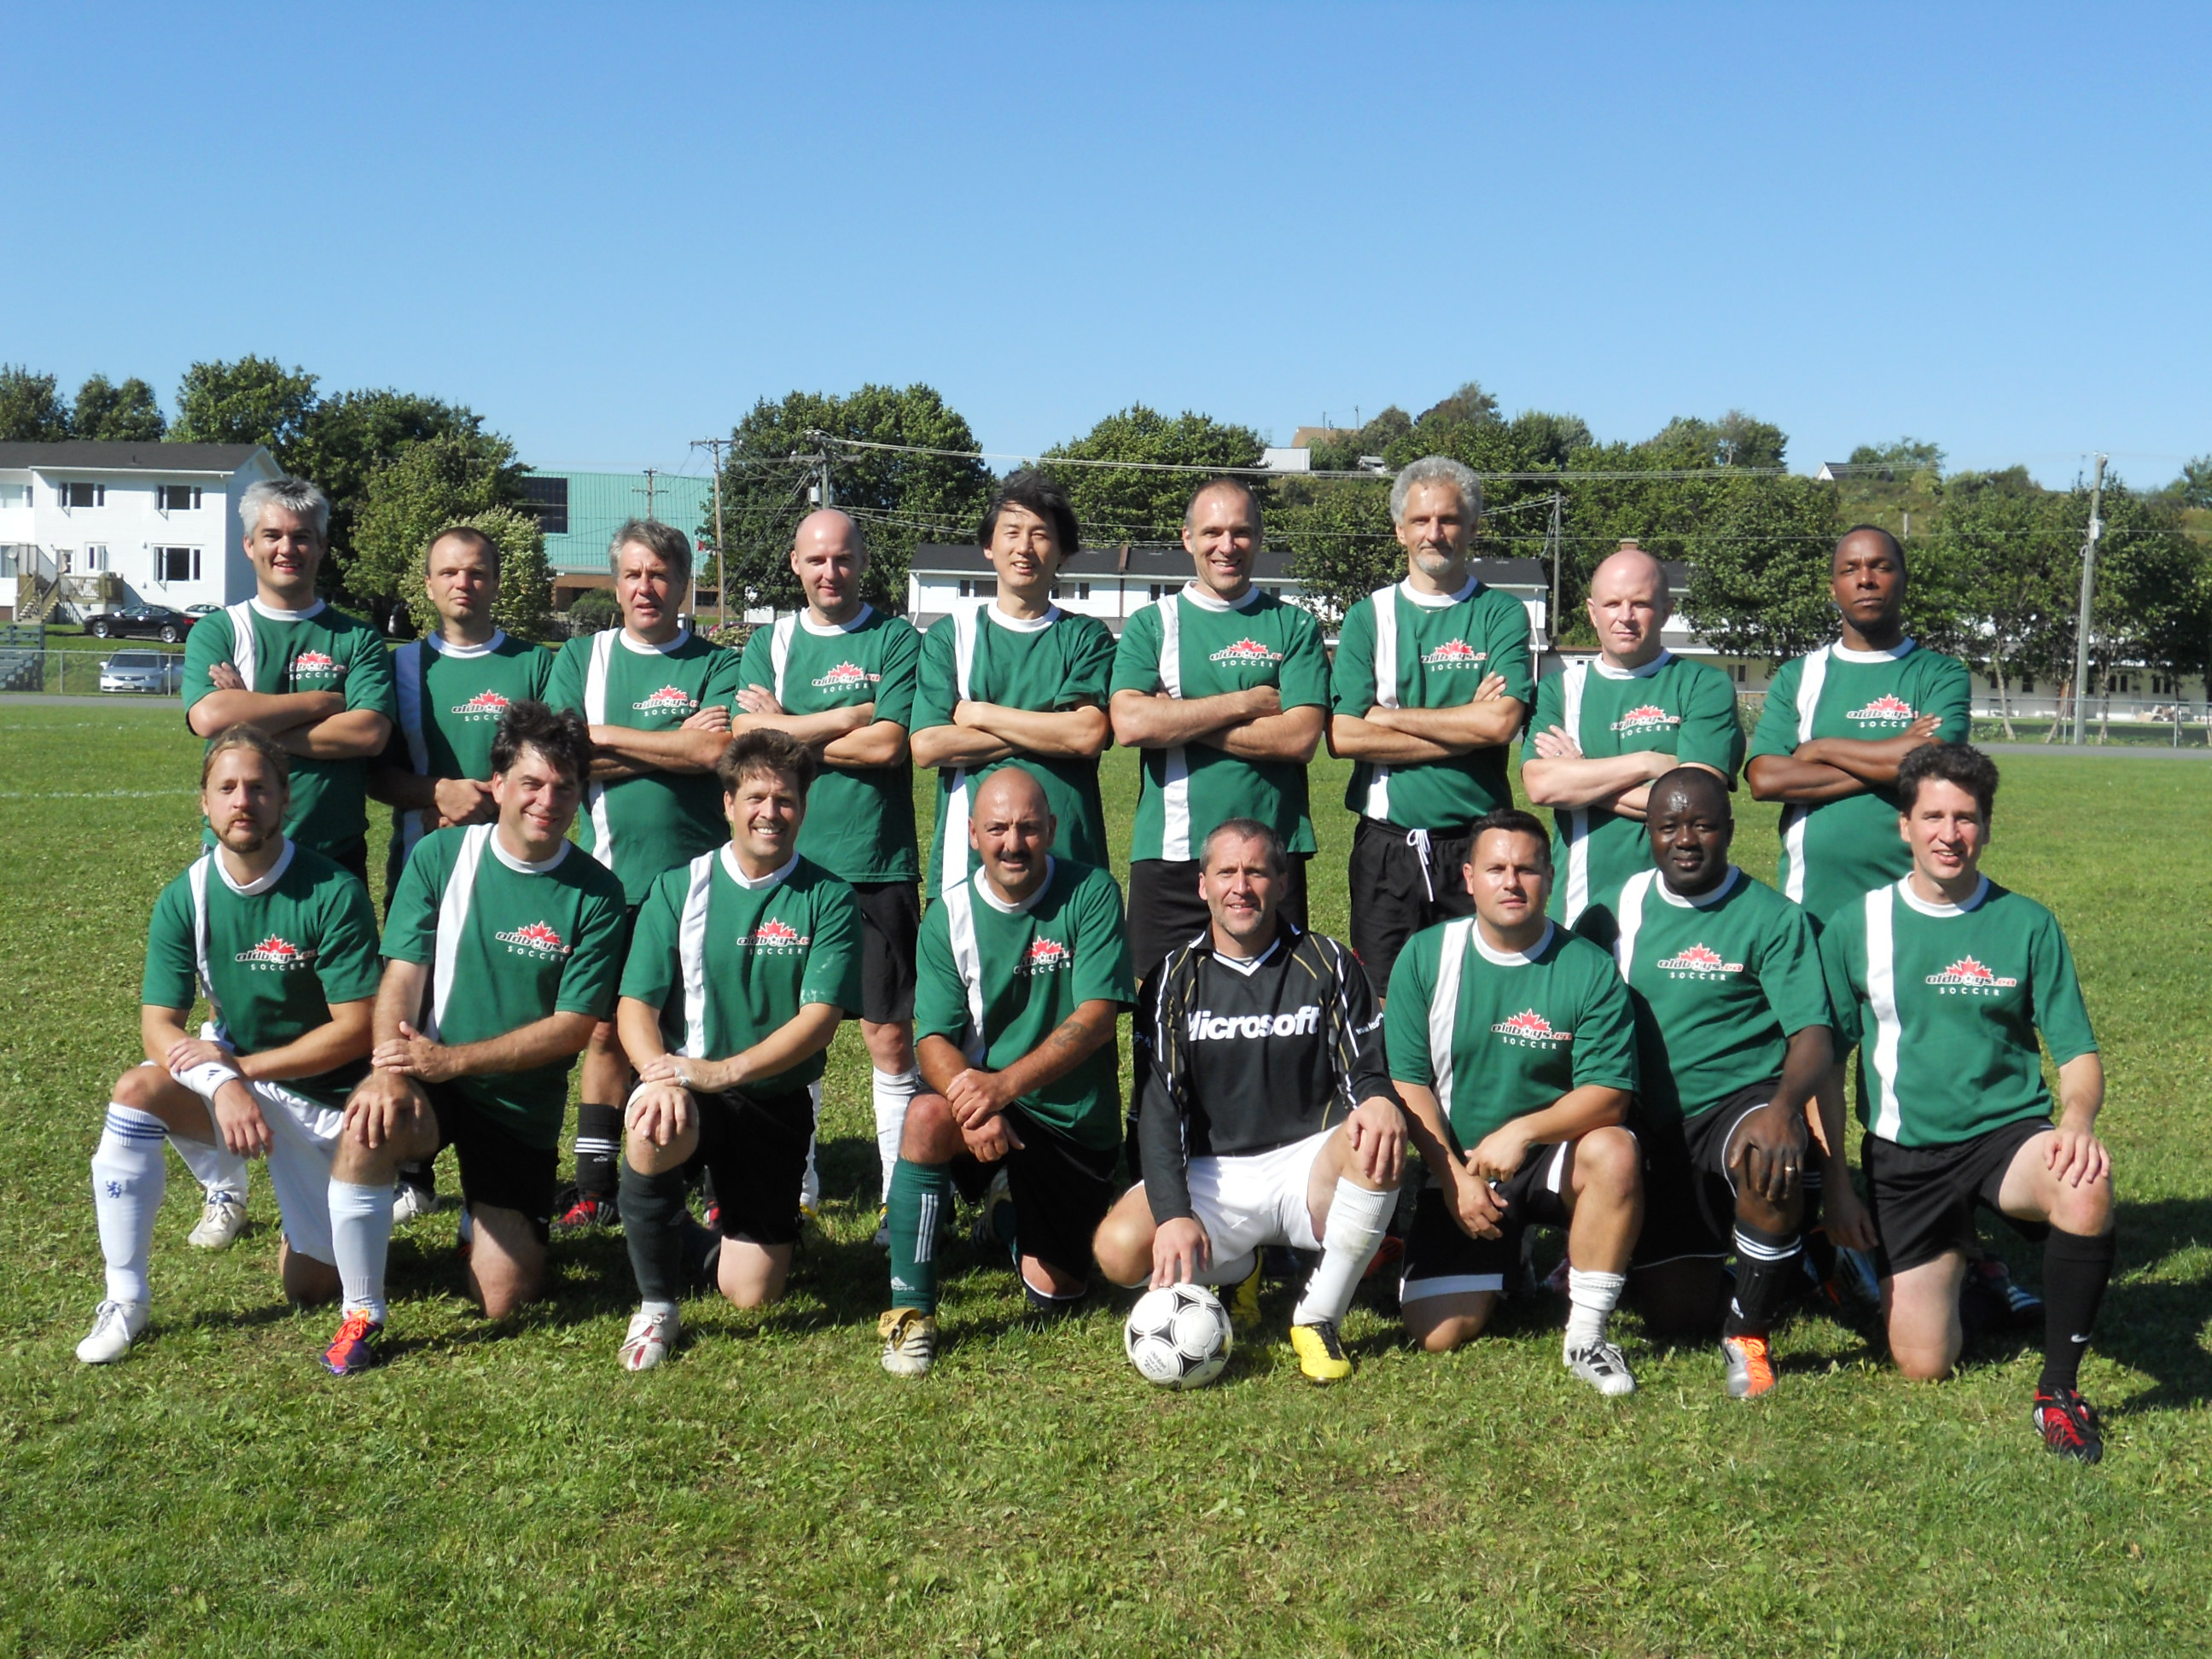 Old Boys' Soccer Club 2011 Prov Team